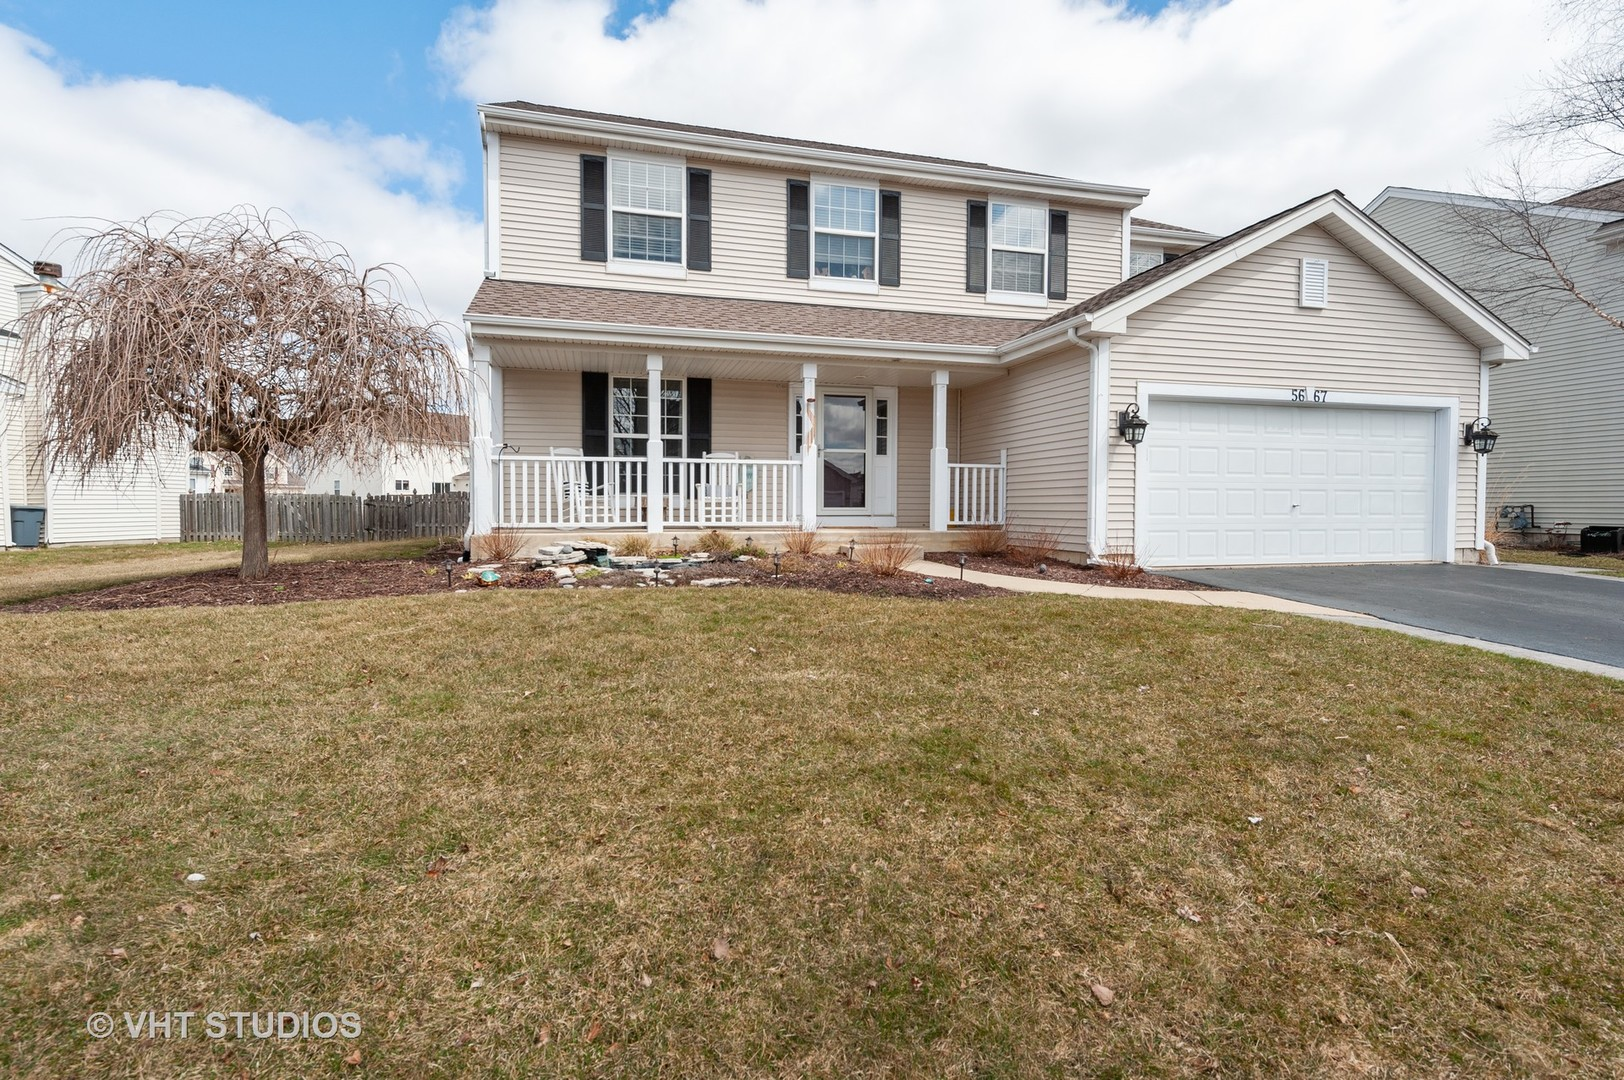 Photo for 5667 Mckenzie Drive, Lake In The Hills, IL 60156 (MLS # 10674266)